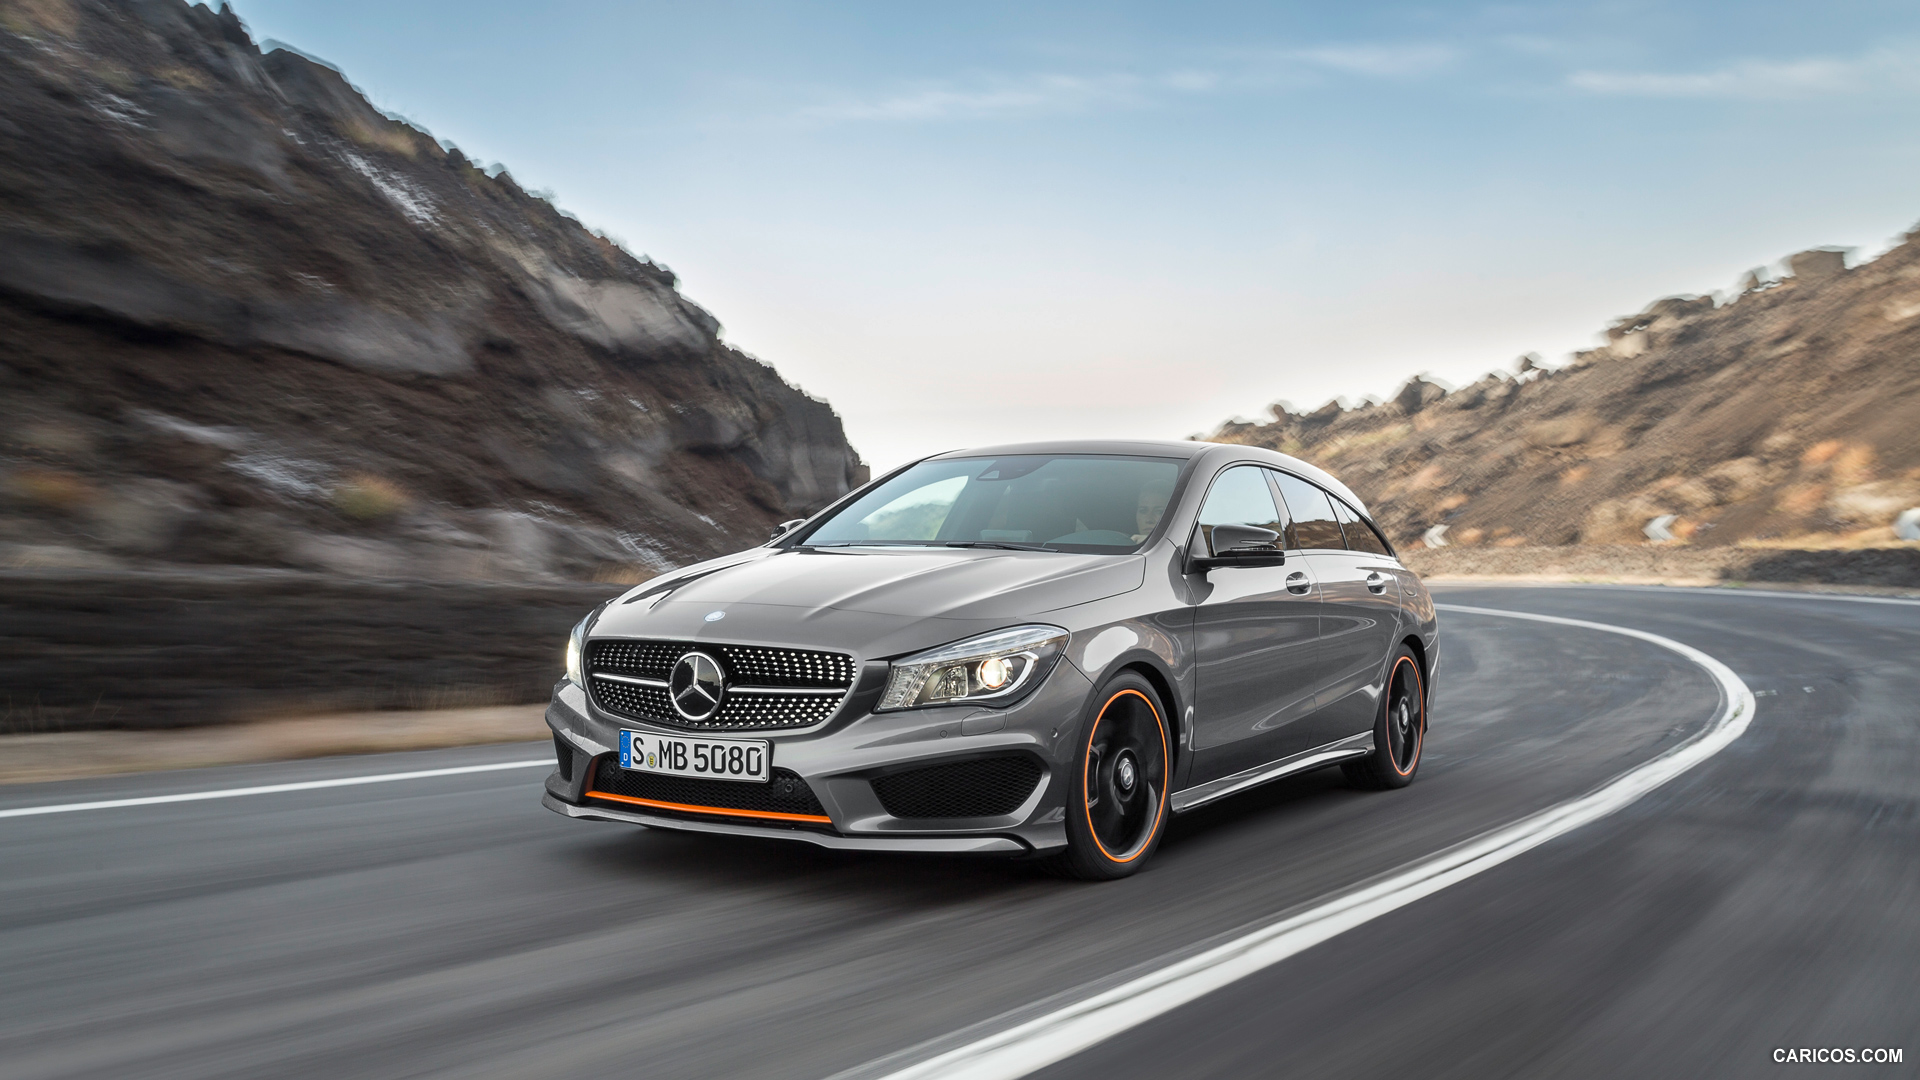 2015 mercedes benz cla - photo #48